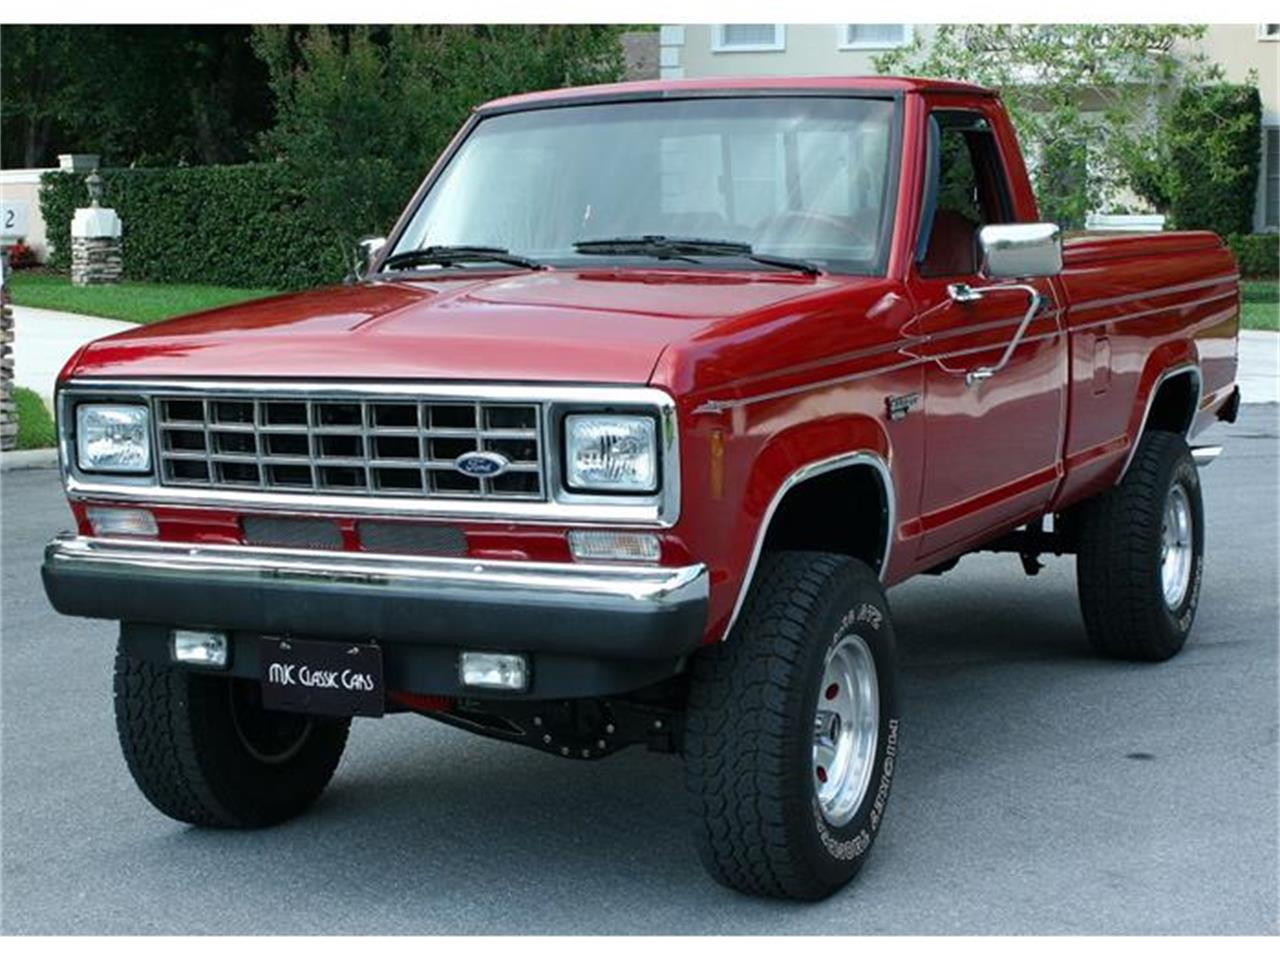 Large picture of 88 ranger i54r